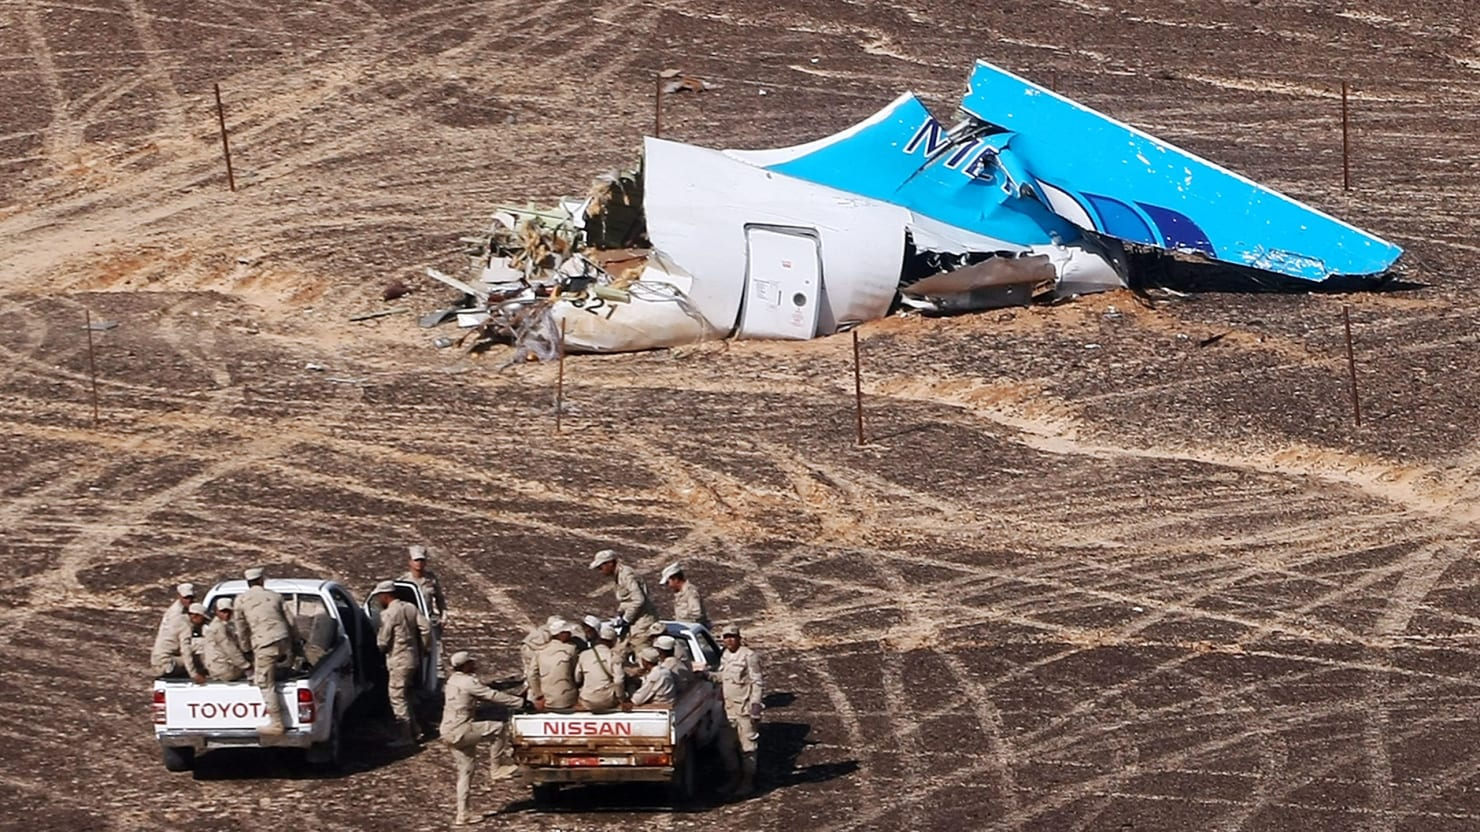 Don't Believe Russian Airline's New Excuse for Crash